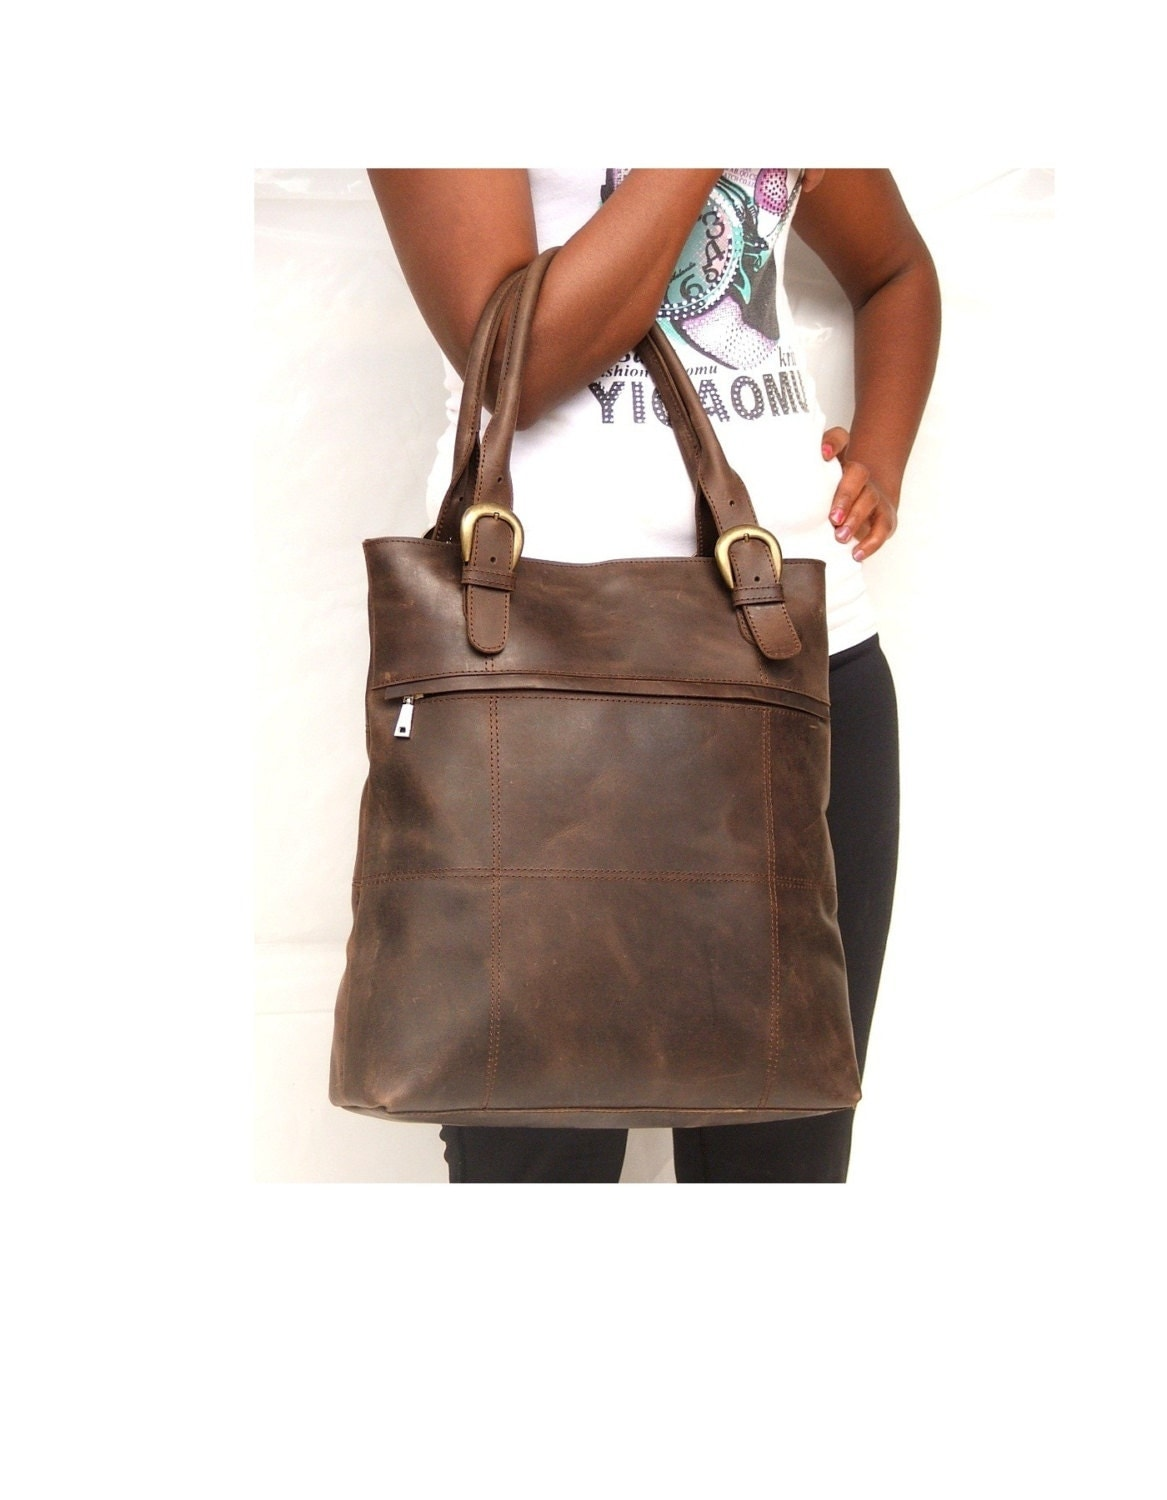 Leather tote bag Dark brown bag market bag library bag every day leather bag laptop bag - abizema